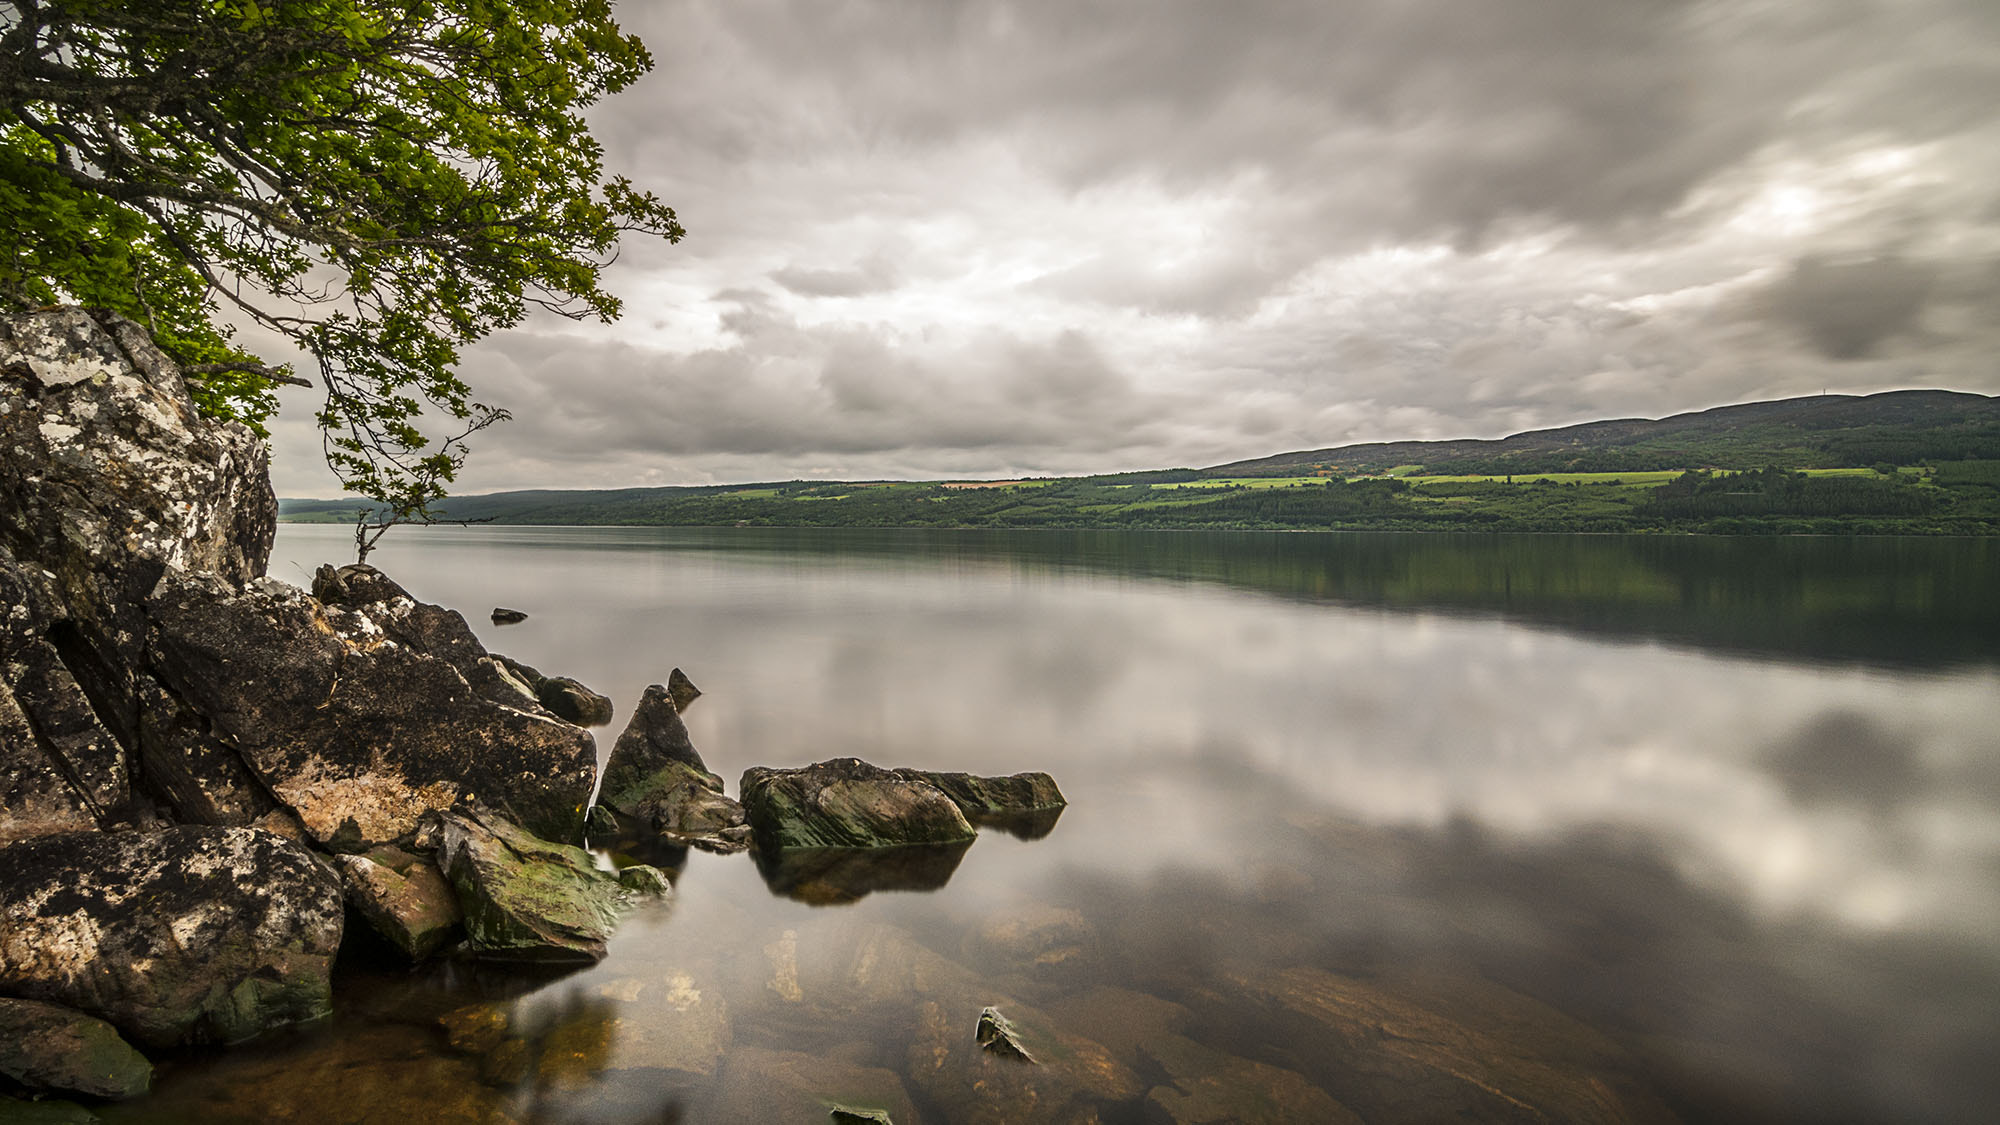 Photograph Loch Ness by Jake Faulkner on 500px